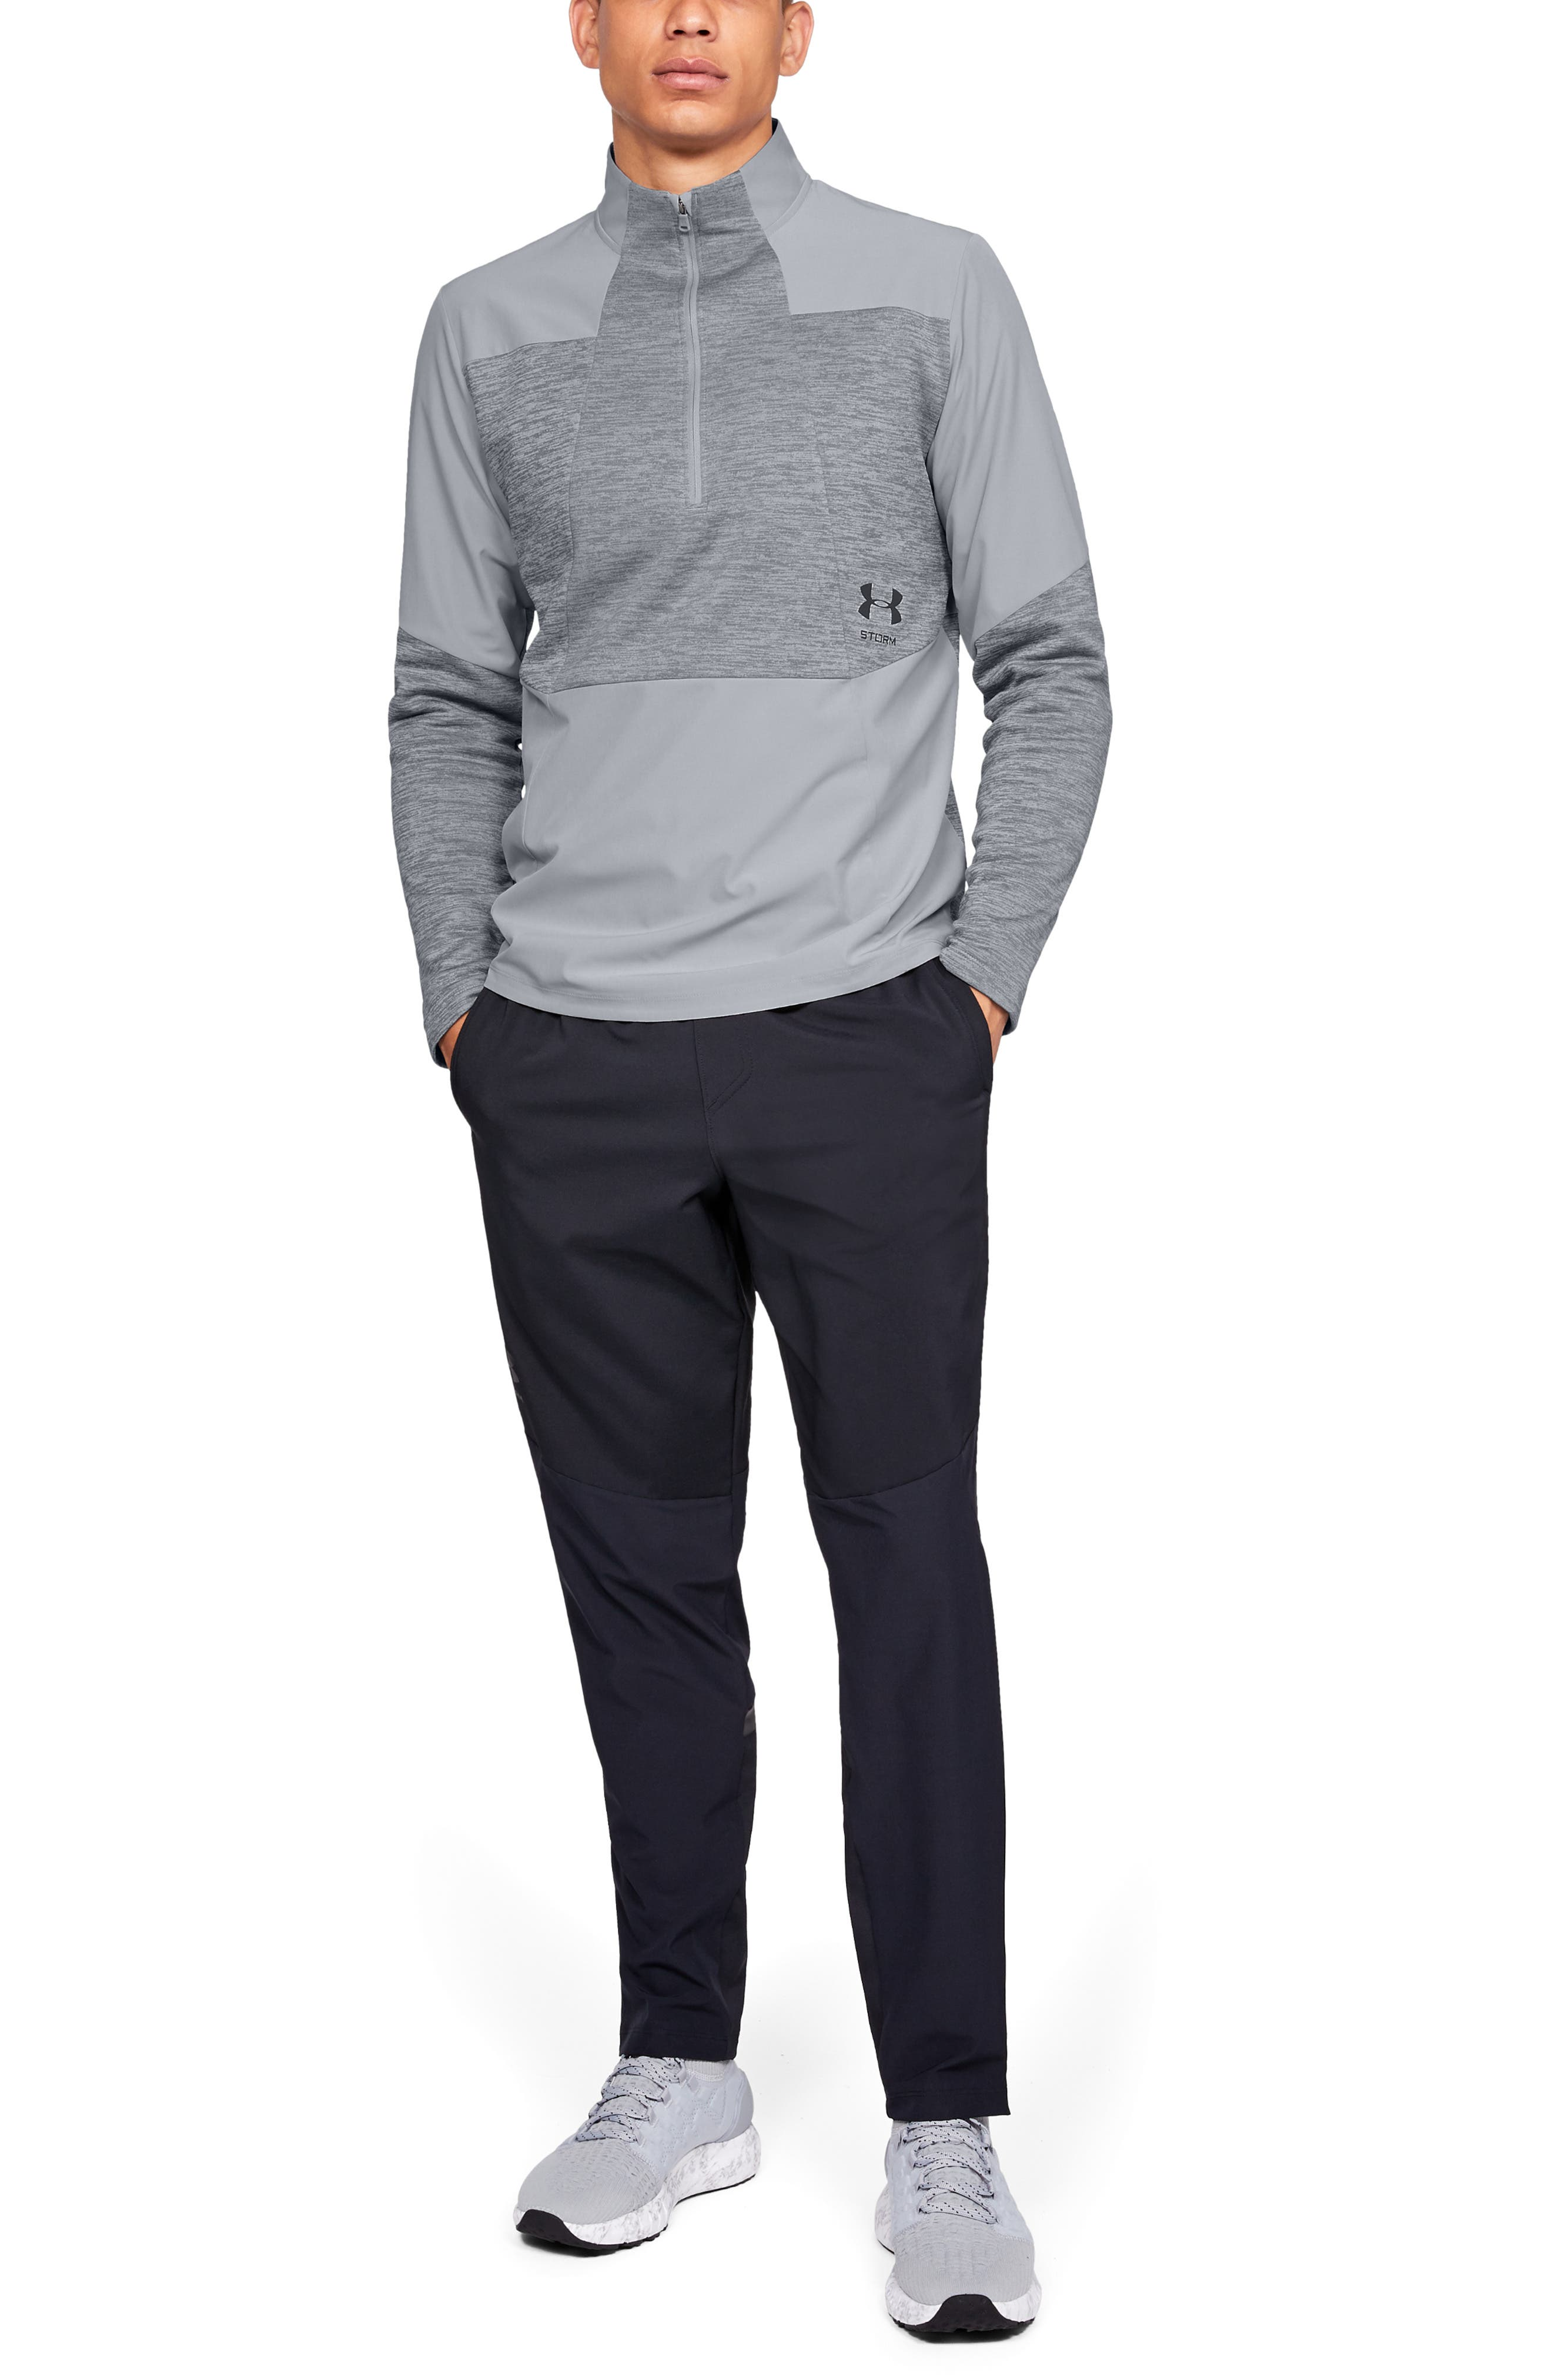 UNDER ARMOUR, Storm Cyclone Water Repellent Quarter Zip Pullover, Alternate thumbnail 5, color, OVERCAST GREY/ BLACK